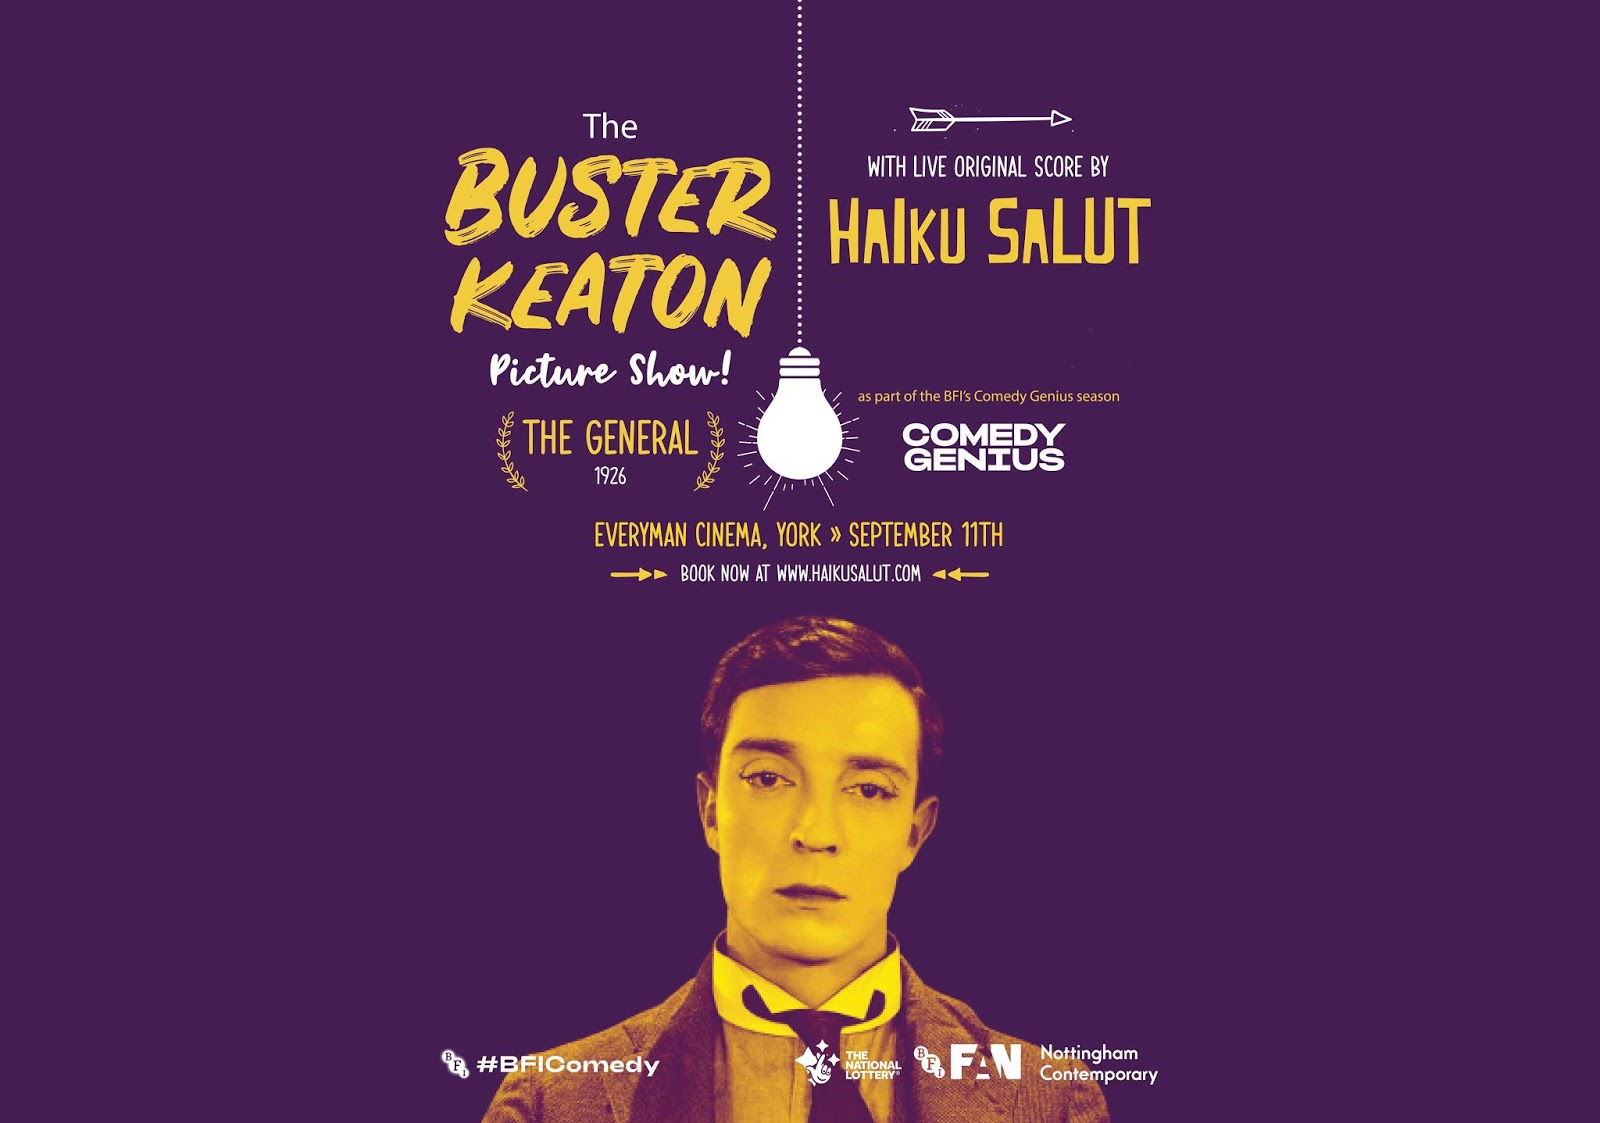 PREVIEW: The Buster Keaton Picture Show feat. Haiku Salut at the Everyman Cinema in York